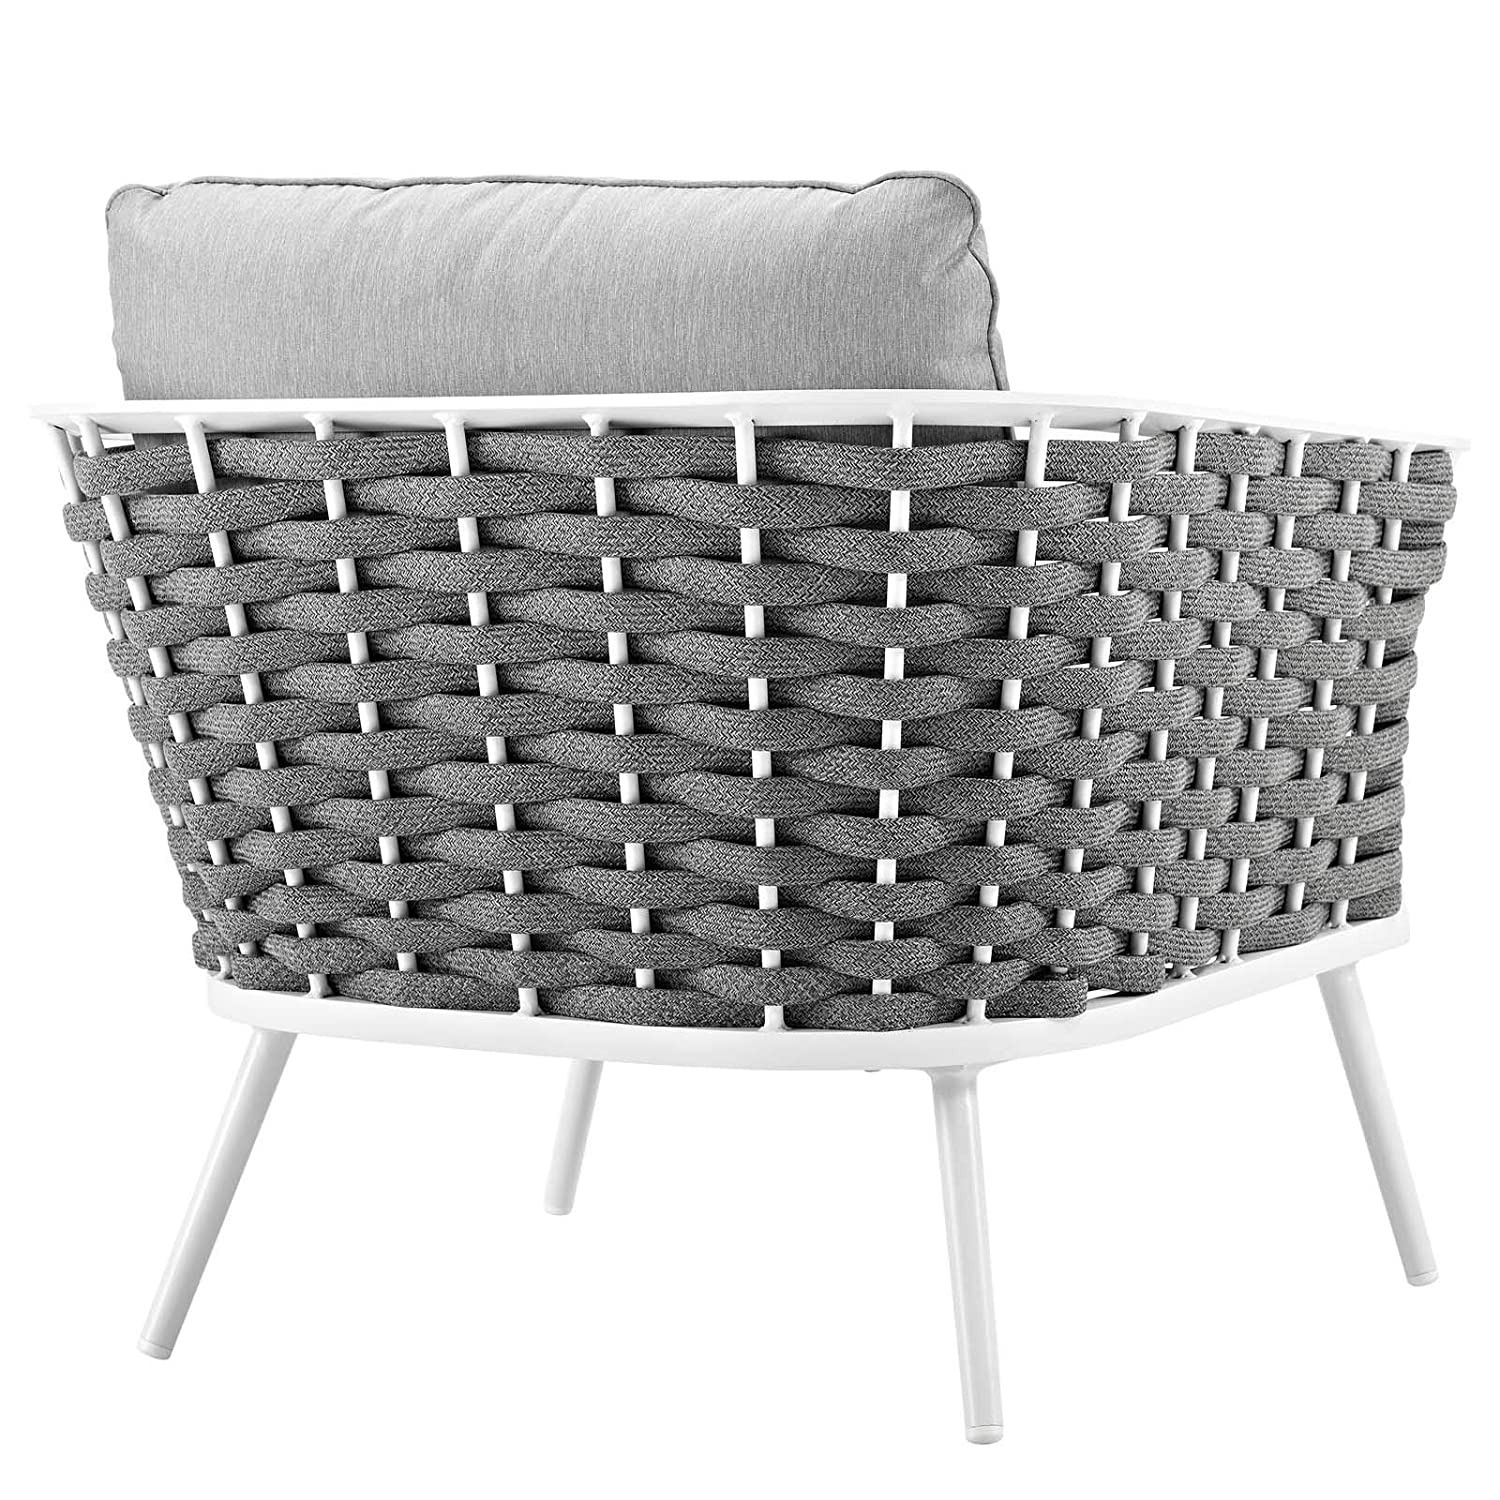 Outdoor Armchair In Gray Fabric W/ Woven Frame - image-1